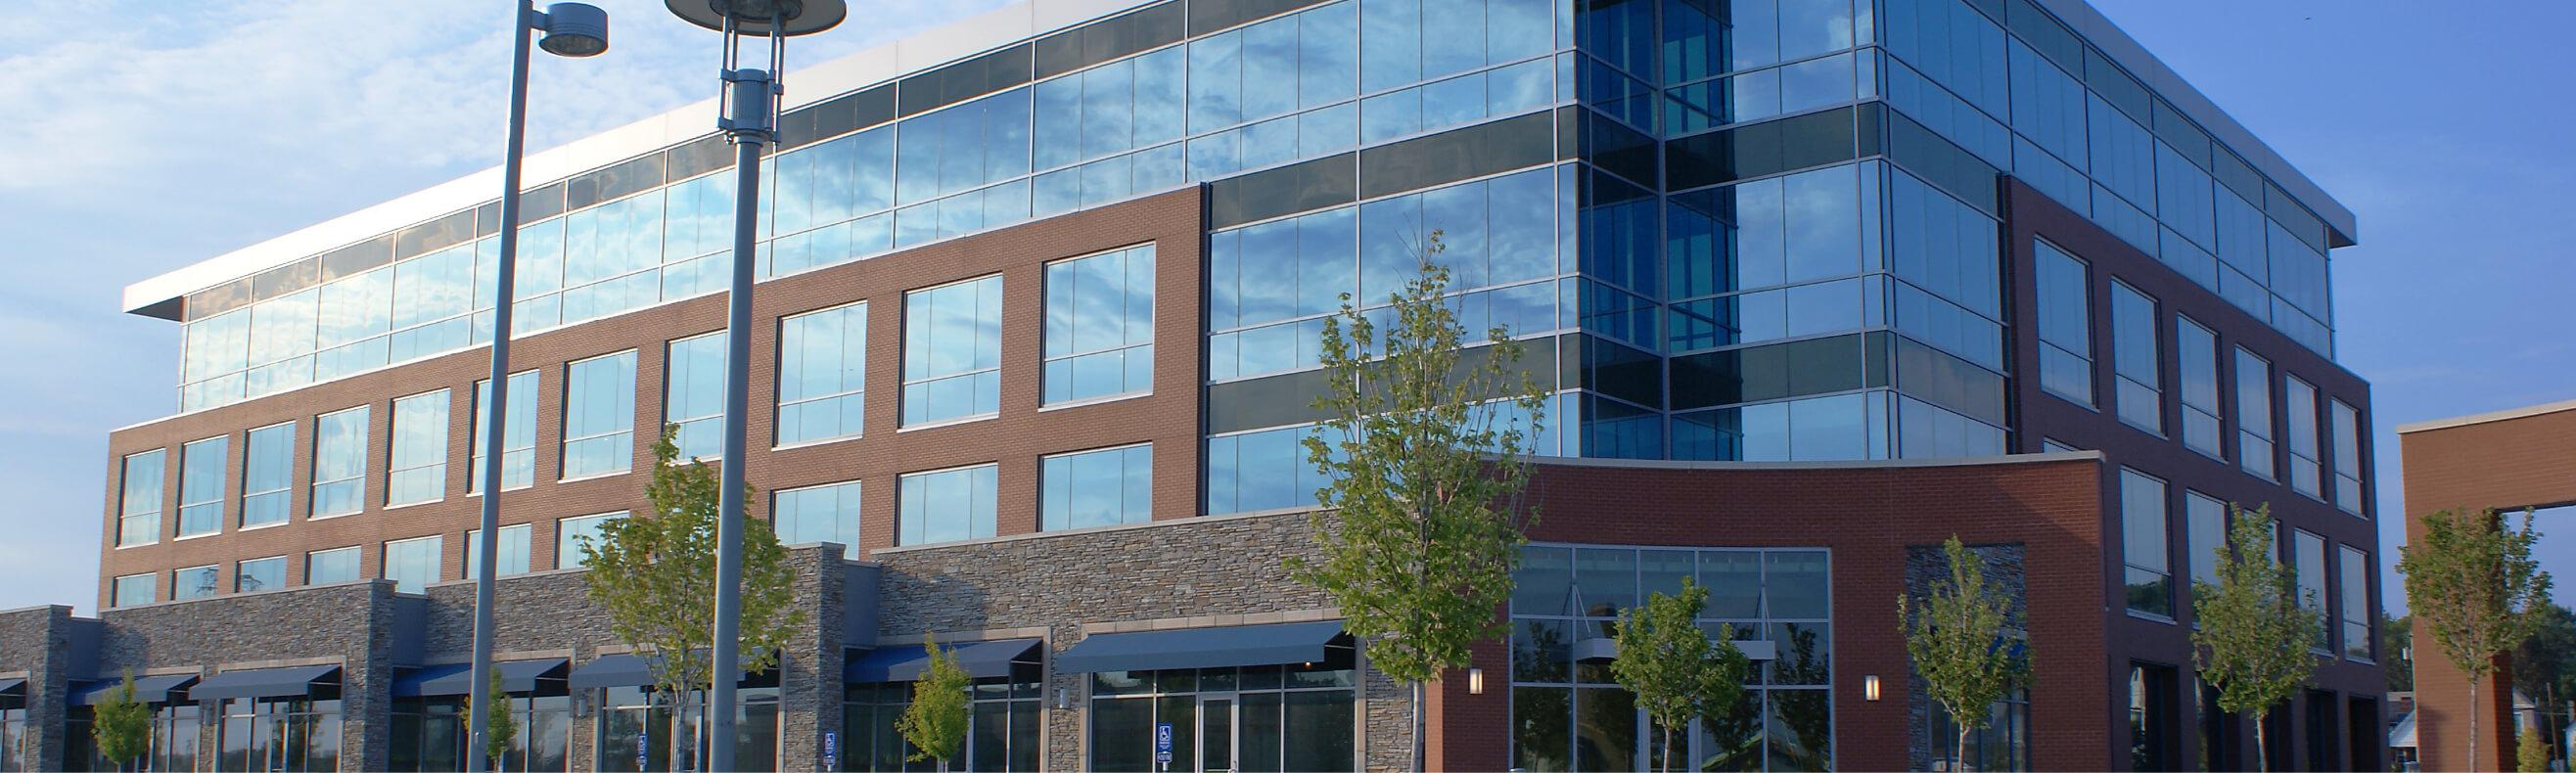 Corporate Commercial Image 1